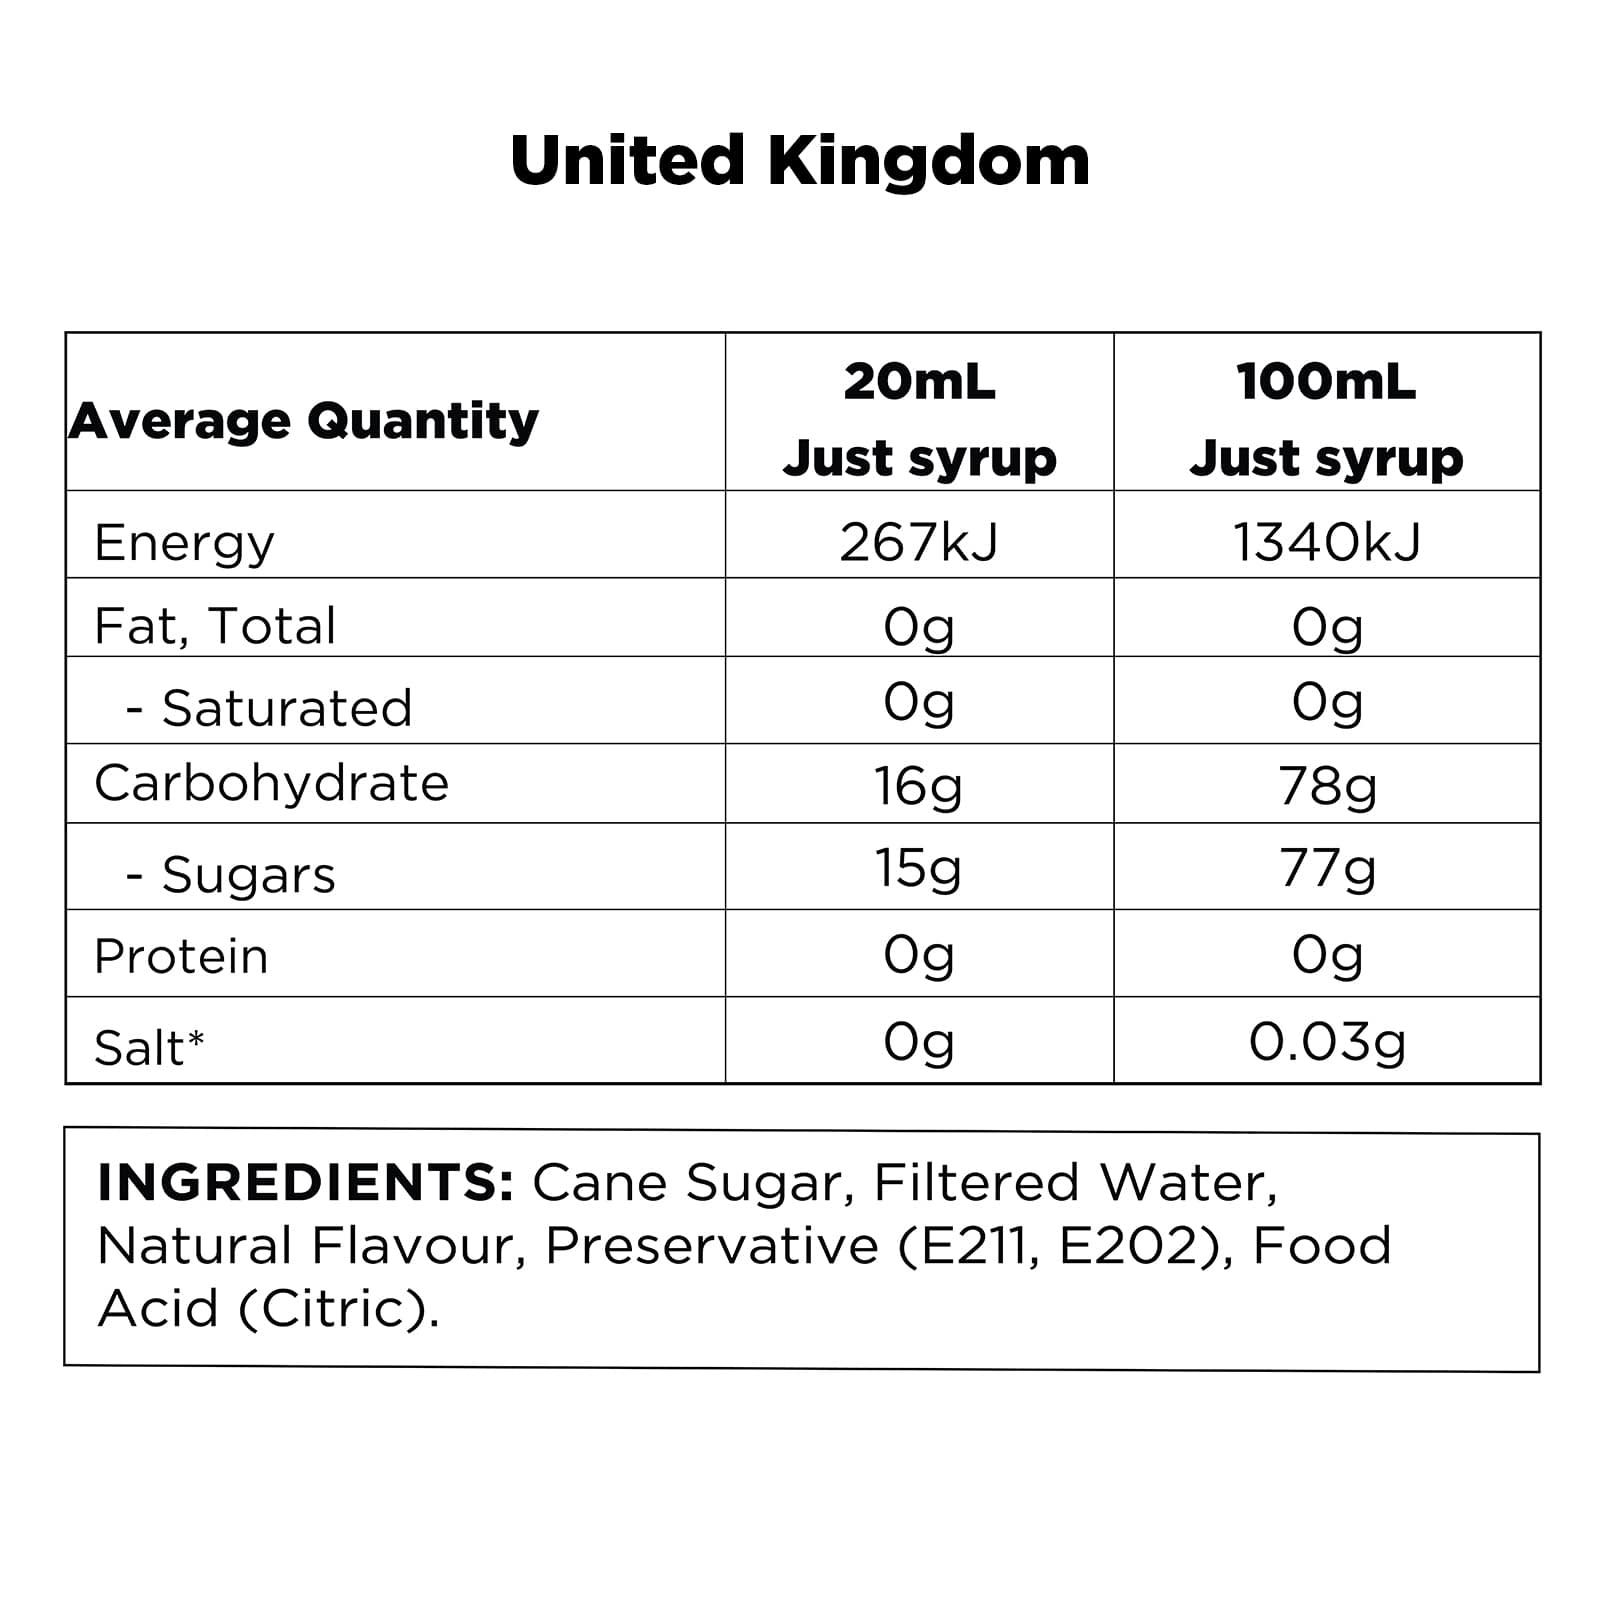 q-vanilla-syrup-for-coffee-nutritional-information-uk-01